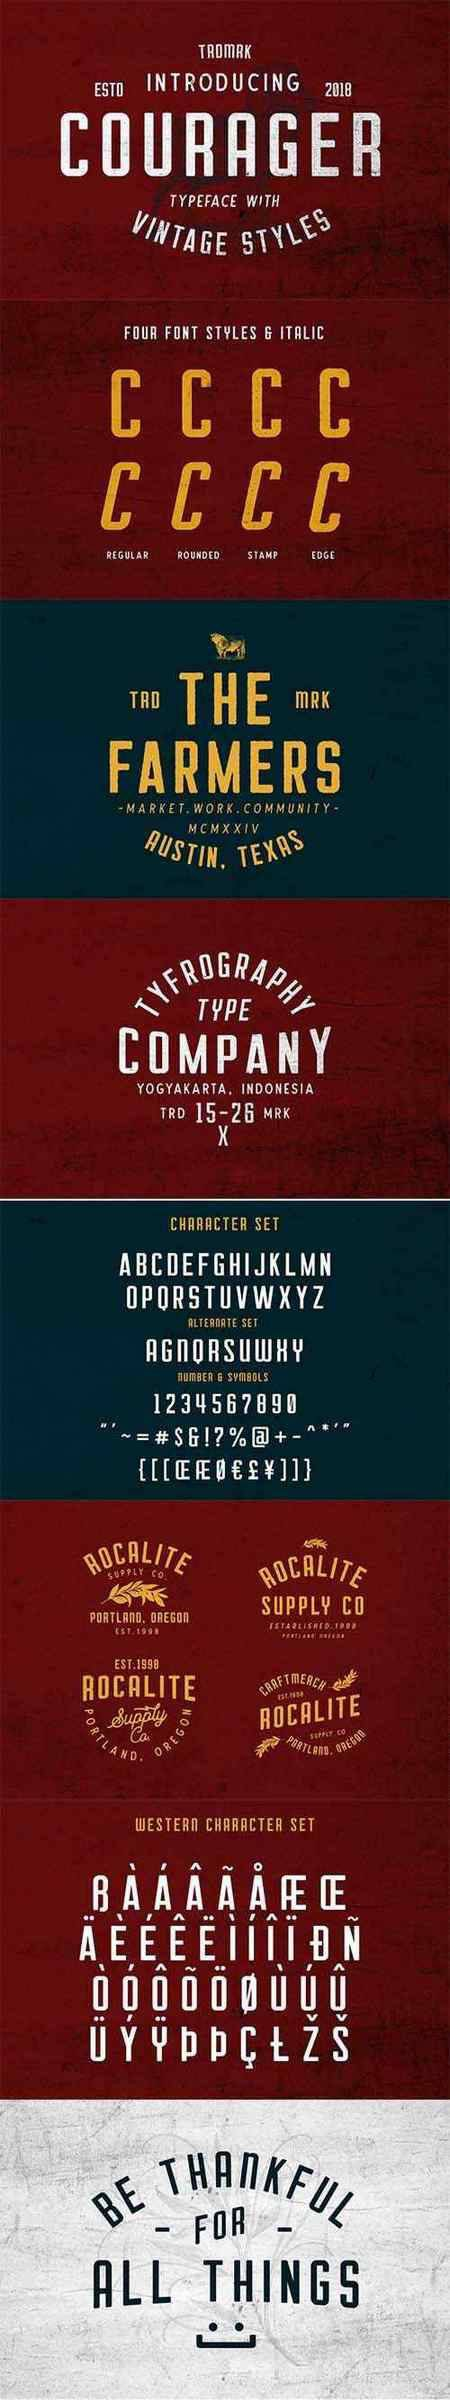 Courager Typeface 2573591